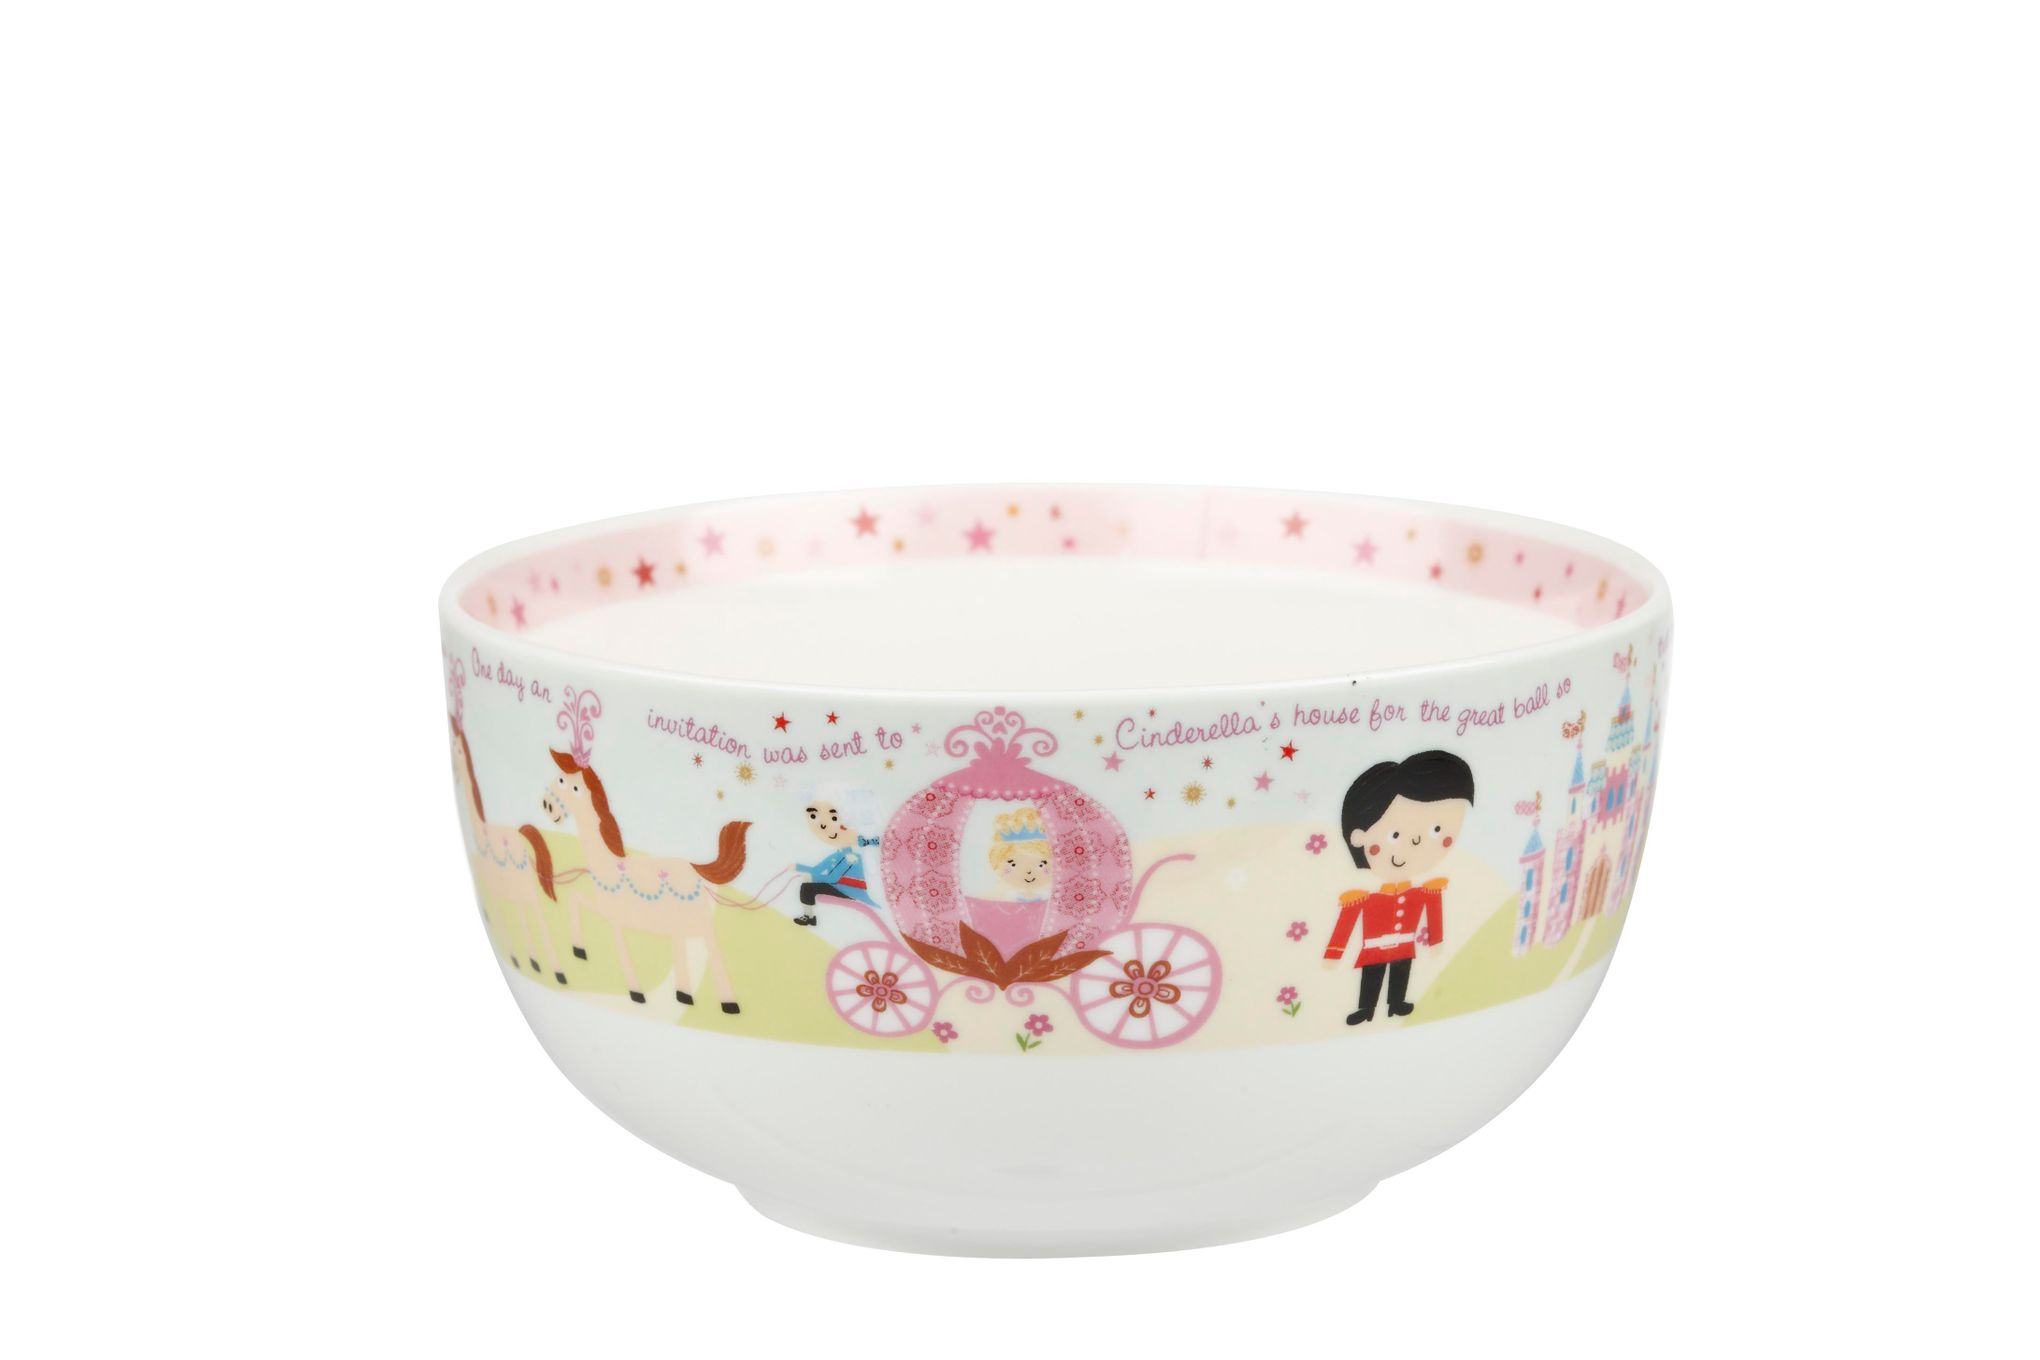 Churchill Little Rhymes Collection - Cinderella 4 Piece Breakfast Gift Box Set Set contains plate, bowl, egg cup and mug thumb 4